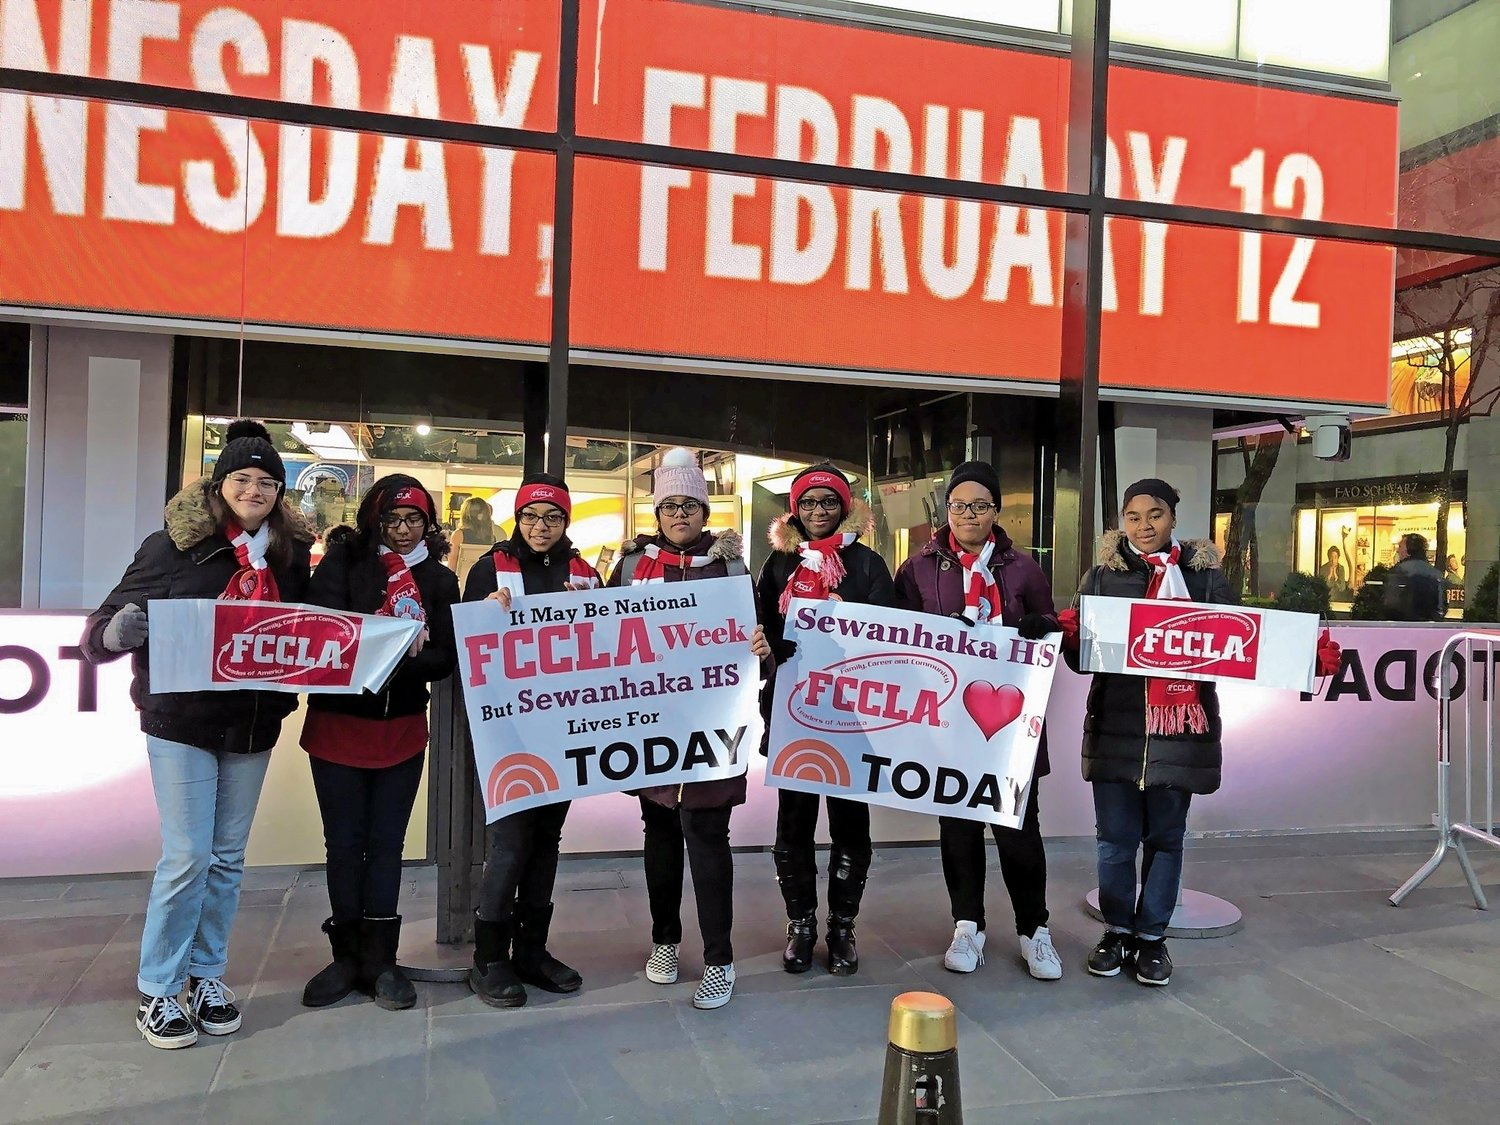 Isabella Galeano, Keziah Joseph, Nia Balgobin, Ashna Balroop, Tyesha Devil, Shania King and Lucila Mathieu stood outside Rockefeller Plaza last year to commemorate FCCLA Week, and the importance of a Family and Consumer Sciences curriculum.